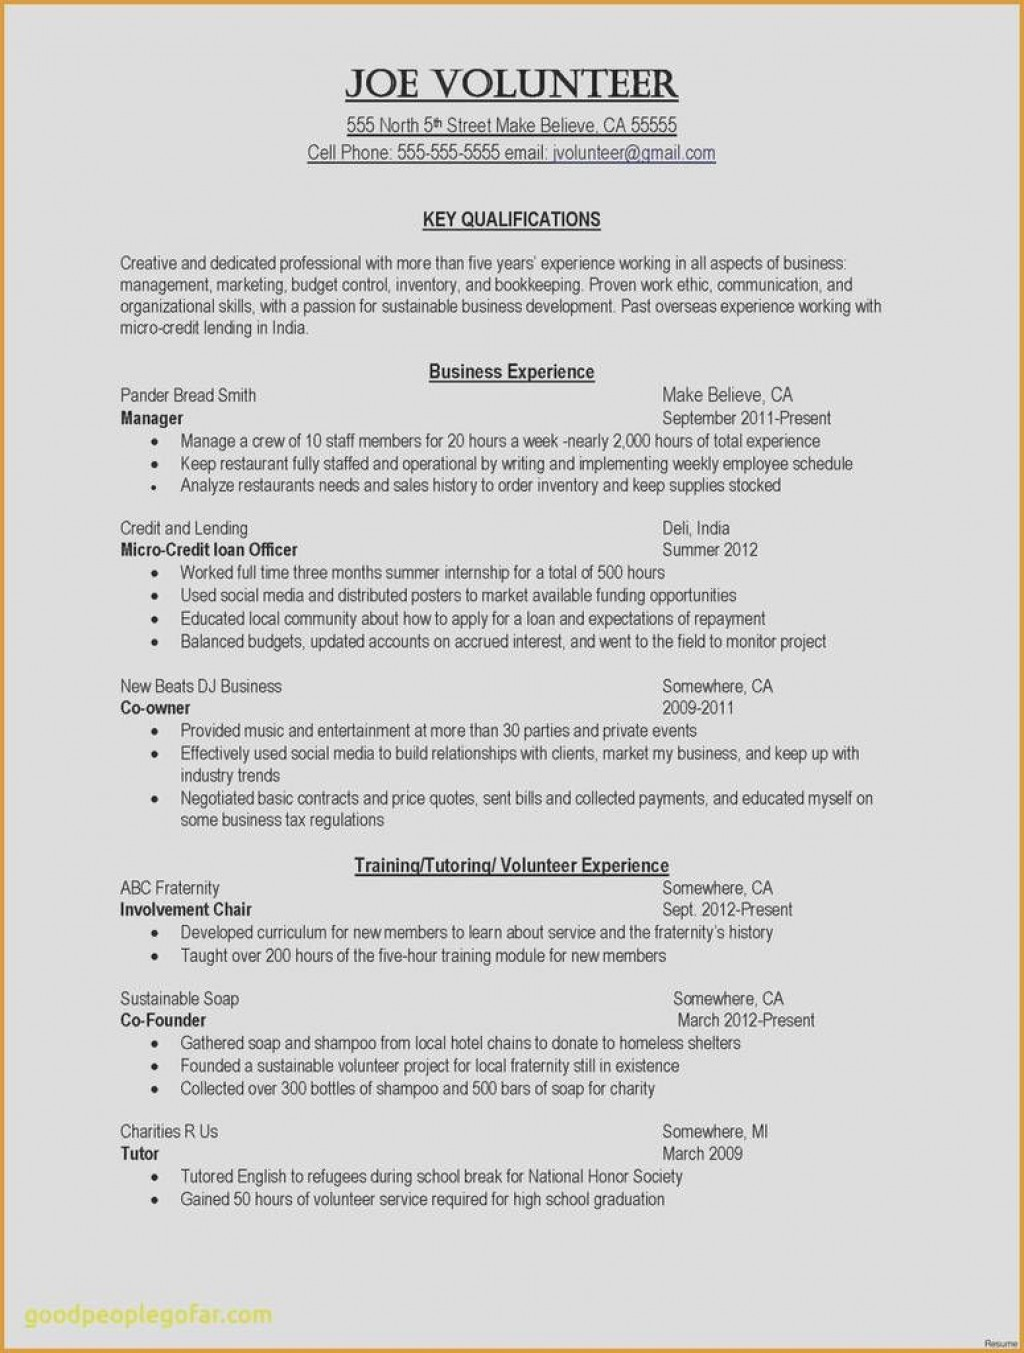 004 Stunning Partnership Buyout Agreement Template Design  Buy Sell Small Busines FormLarge